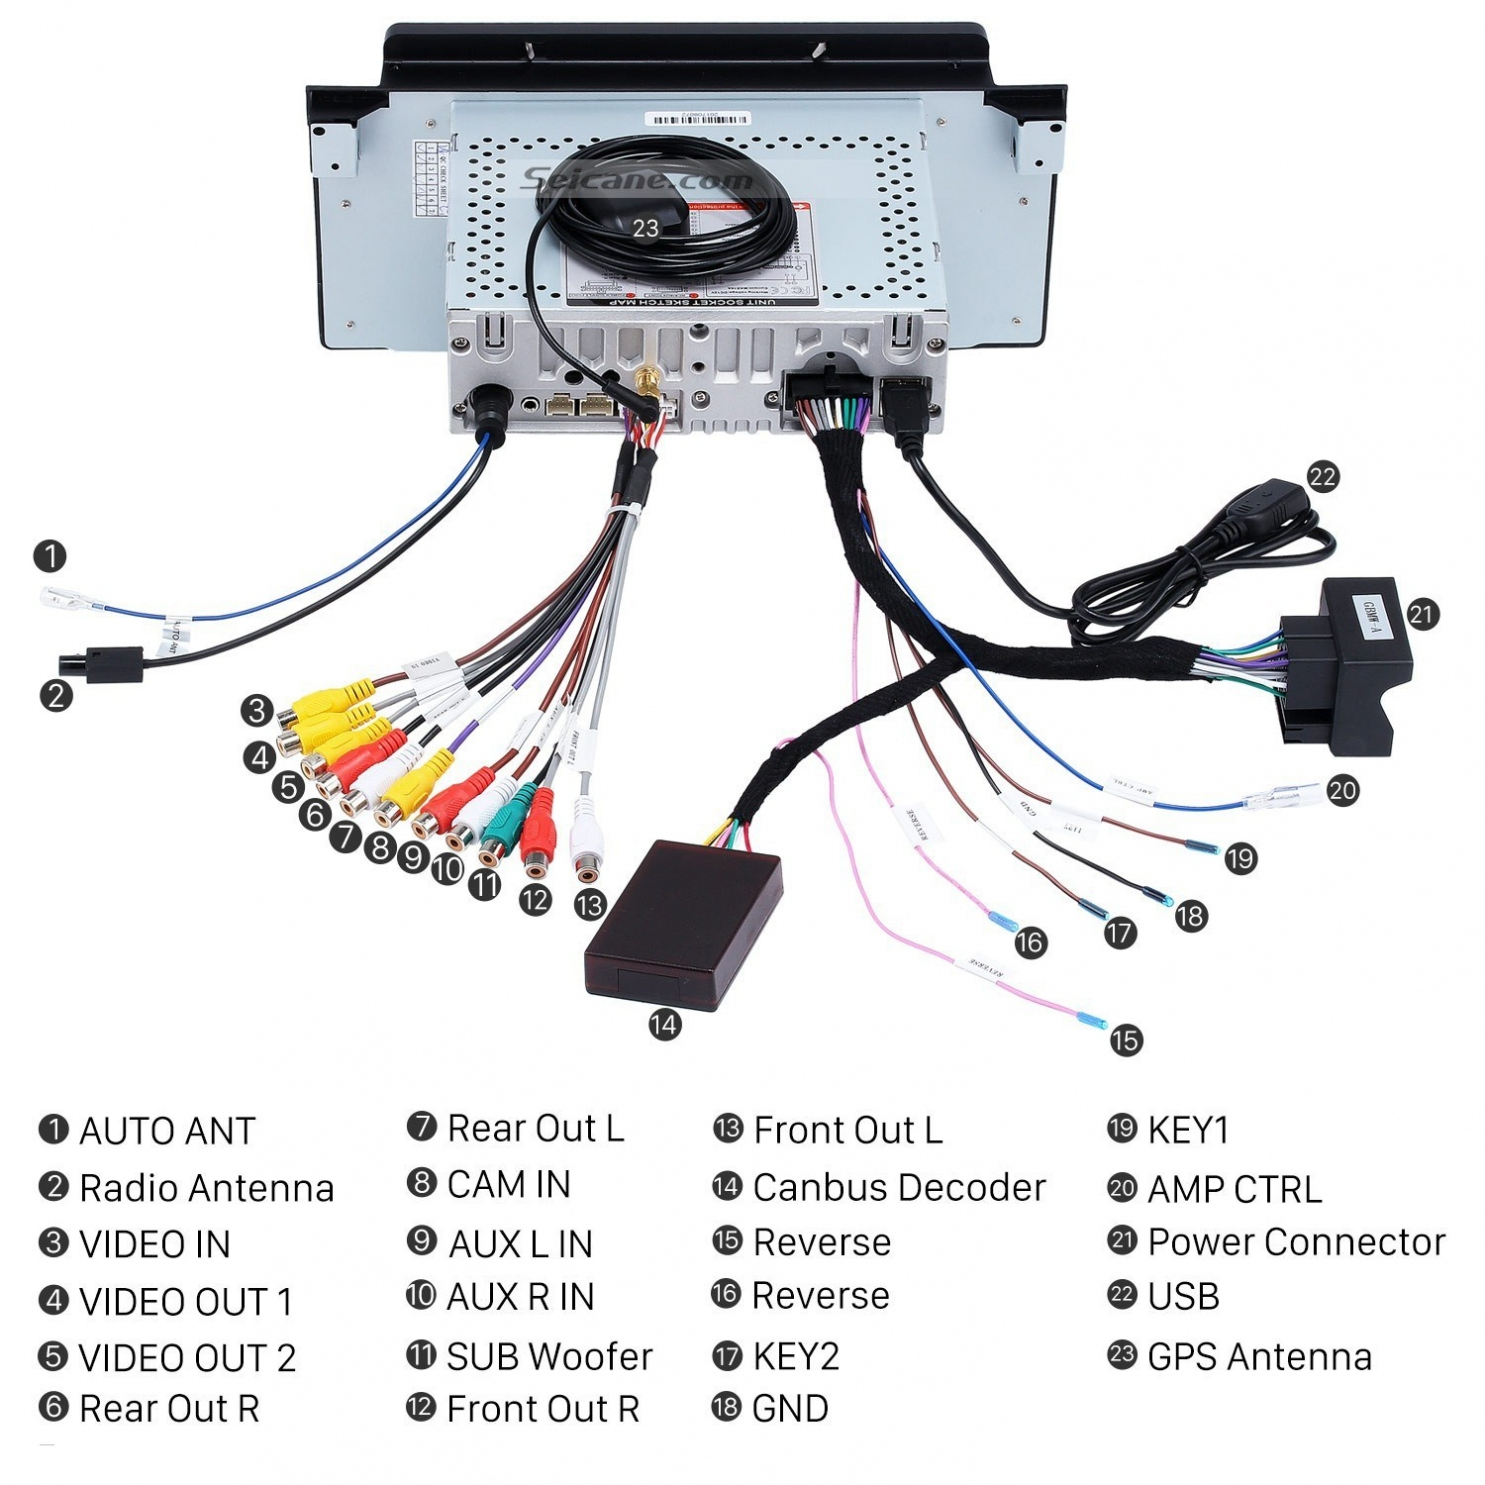 Obd2 To Usb Cable Wiring Diagram | Wiring Library - Obd2 To Usb Wiring Diagram